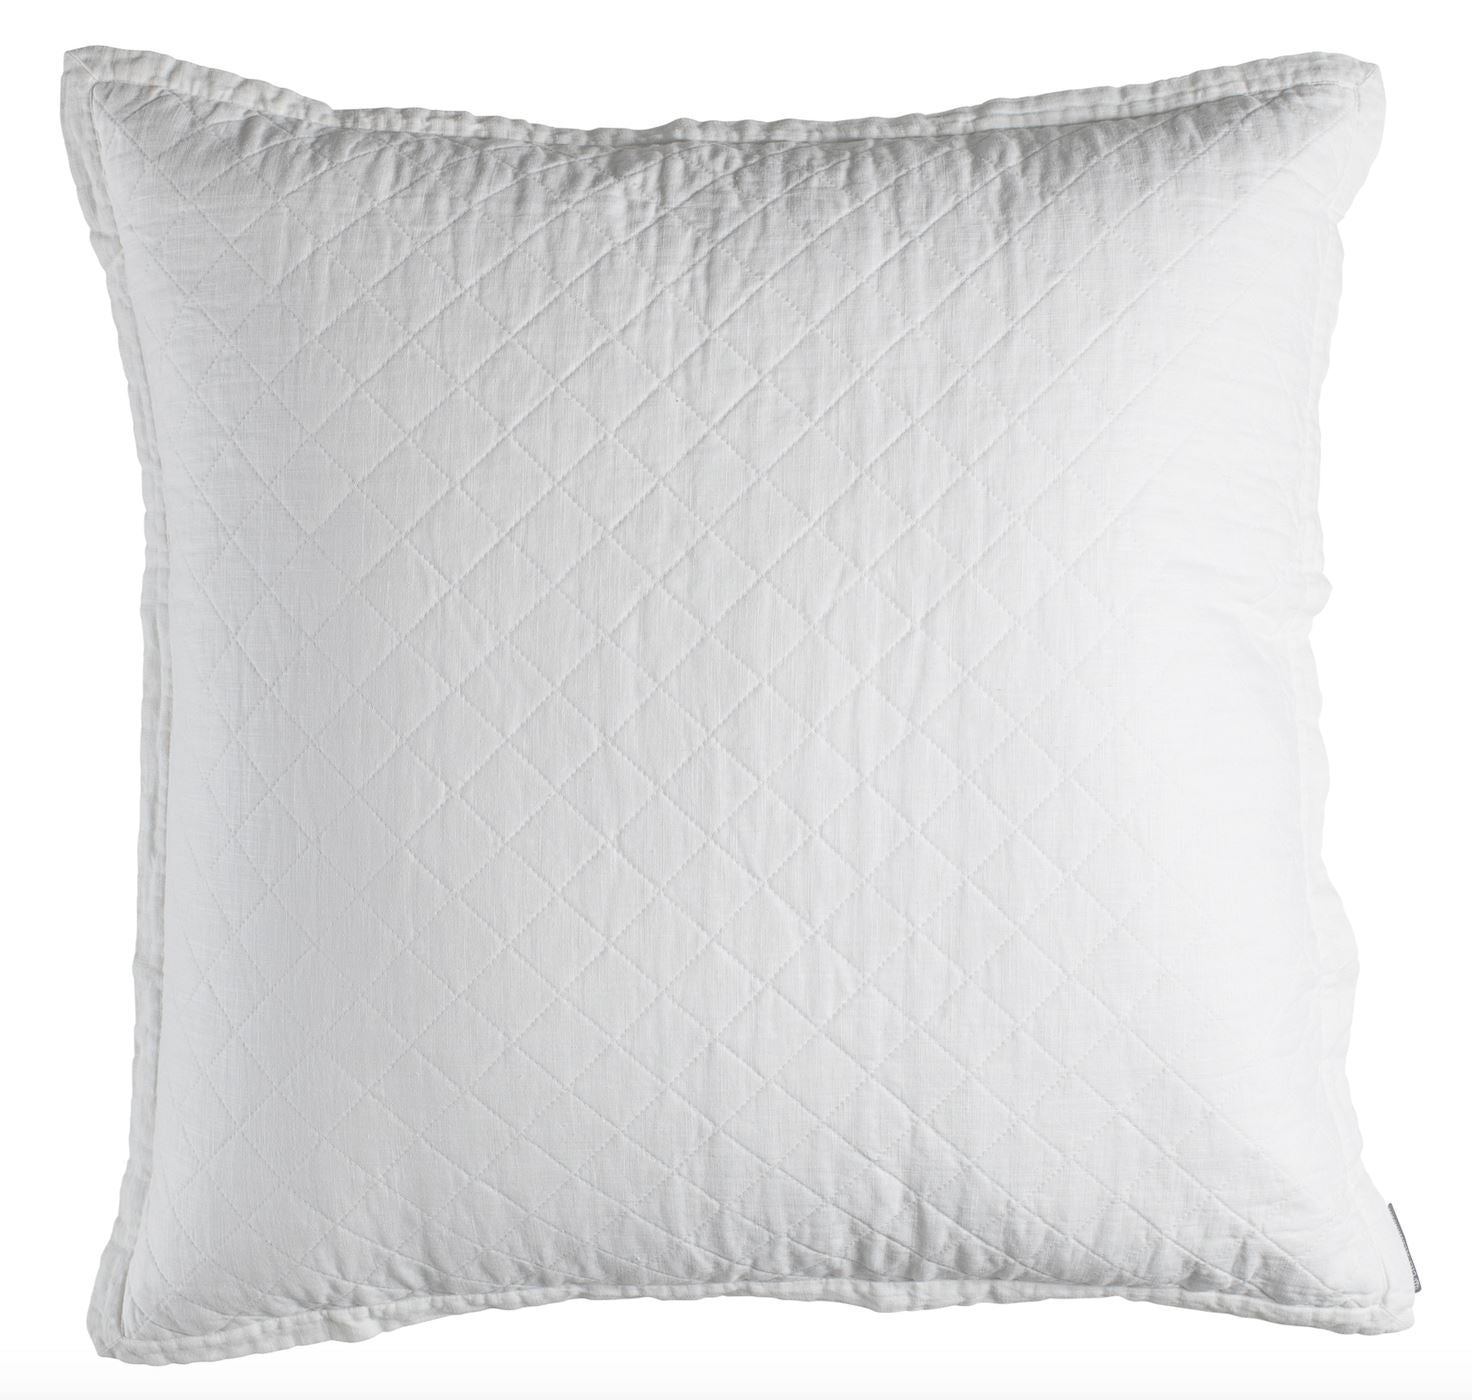 Lili Alessandra Emily White European Pillow